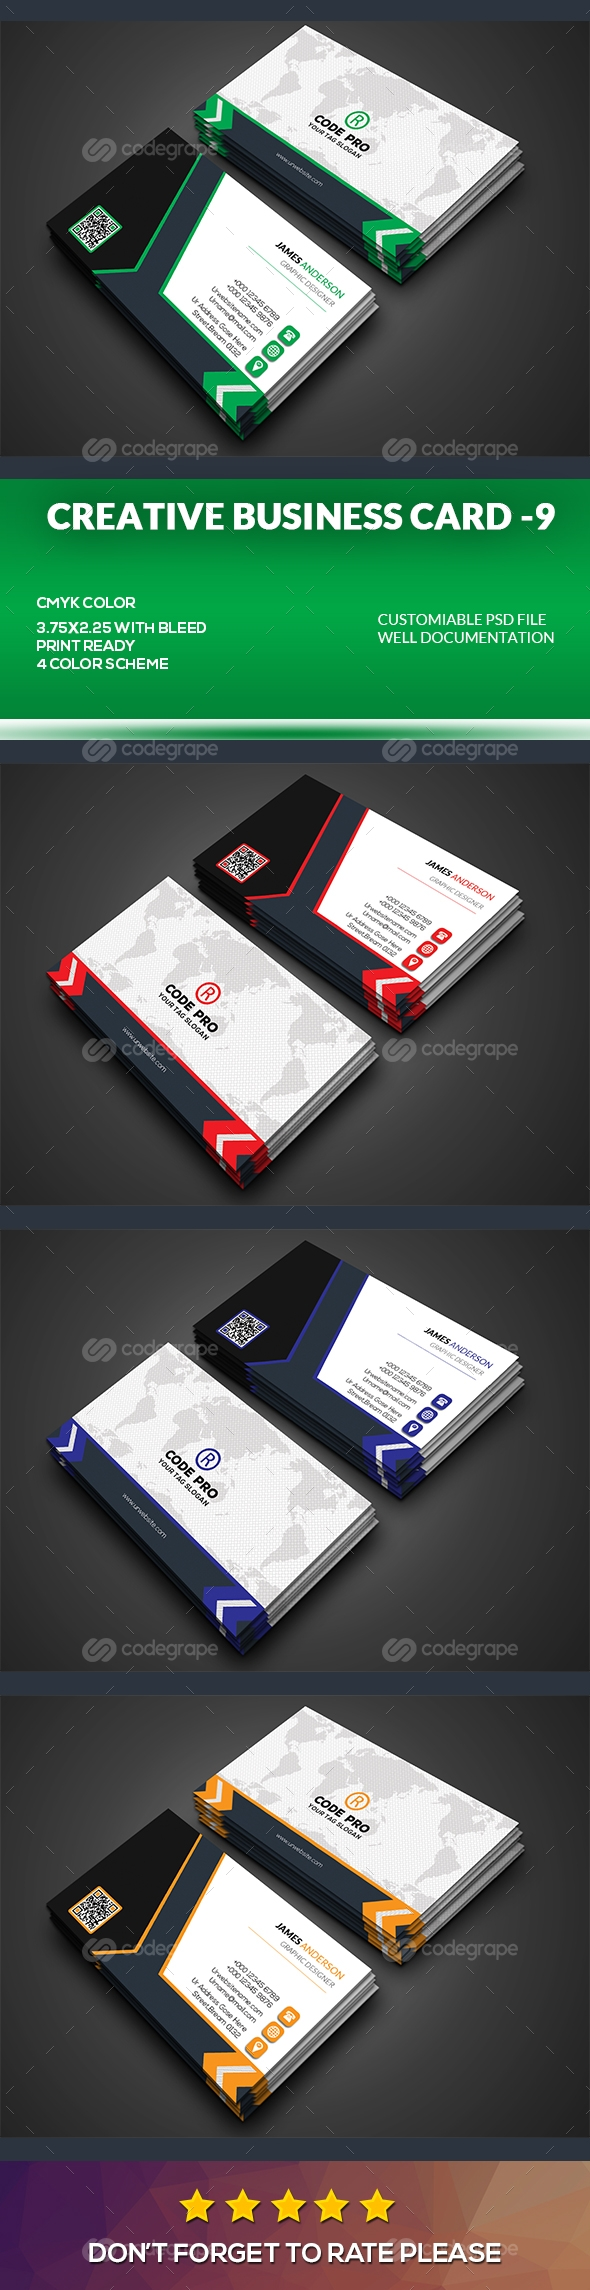 Creative Business Card -9